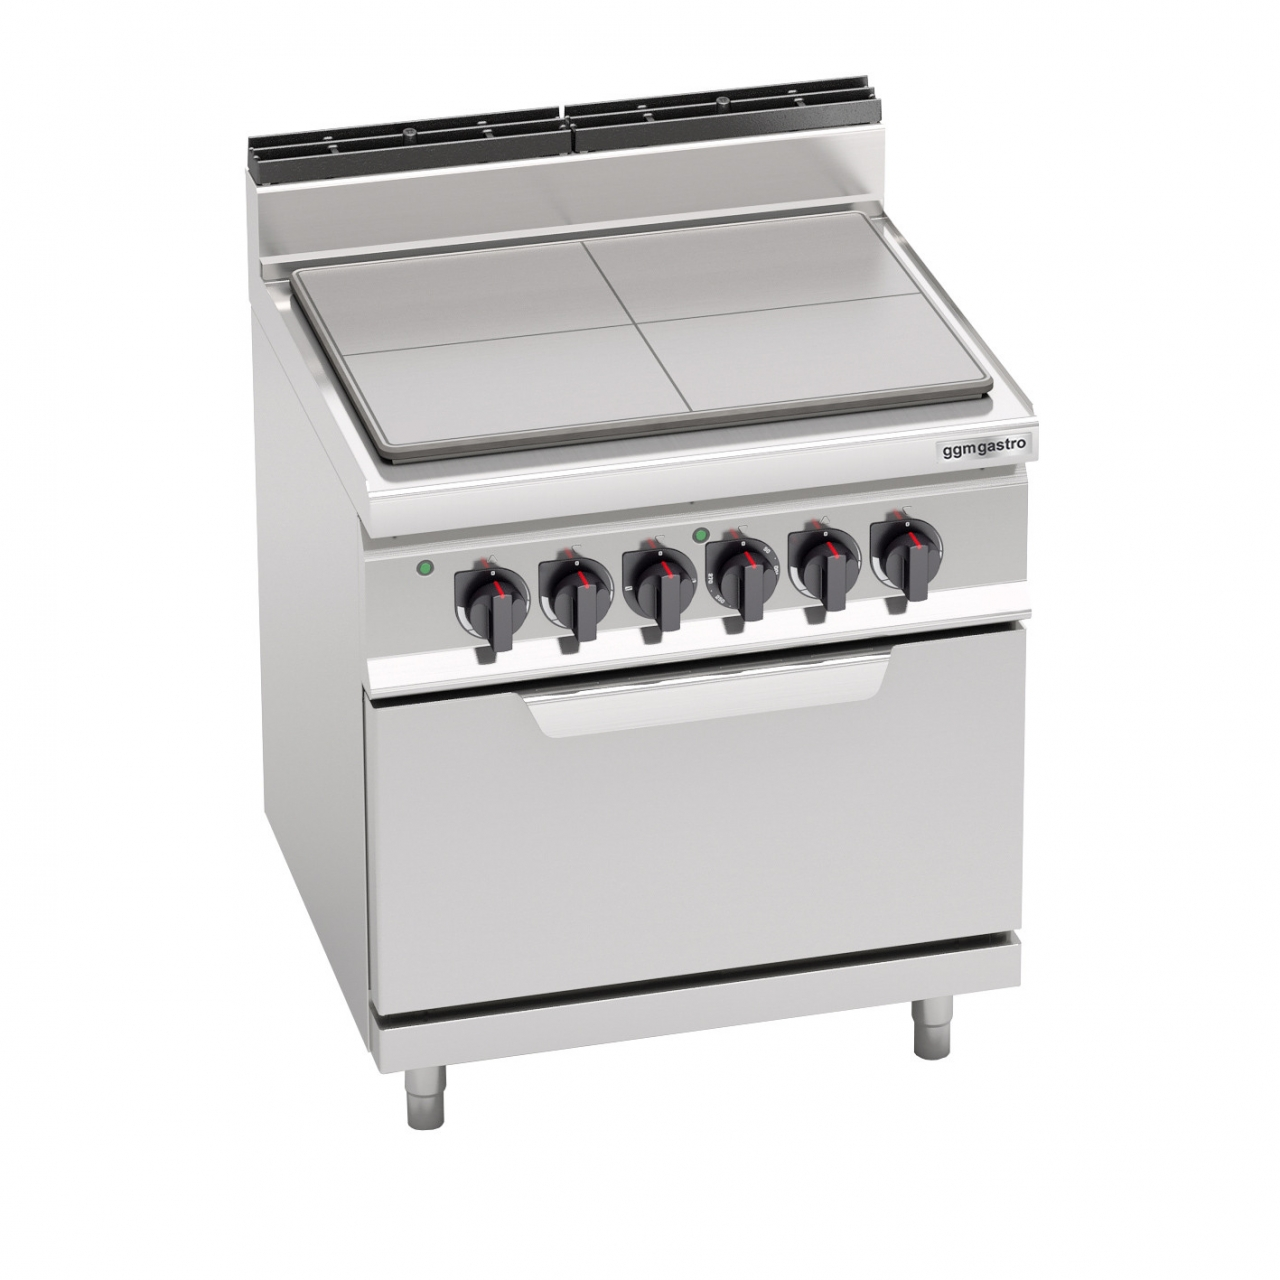 Hot plate stove 9kW + Static electric stove 7,5kW